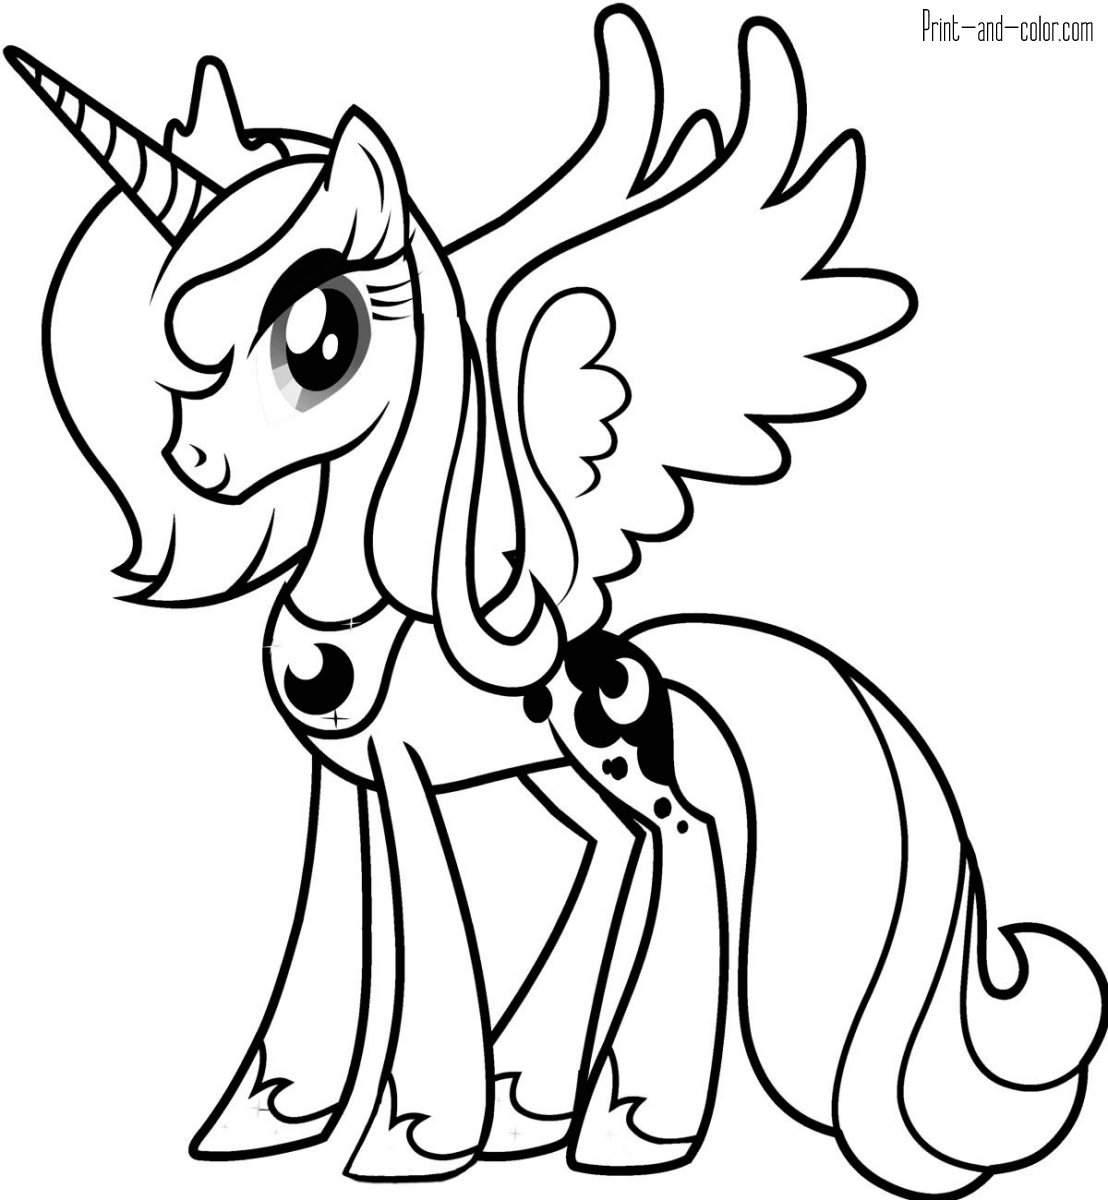 my little pony printable pages my little pony coloring pages print and colorcom my pages printable pony little